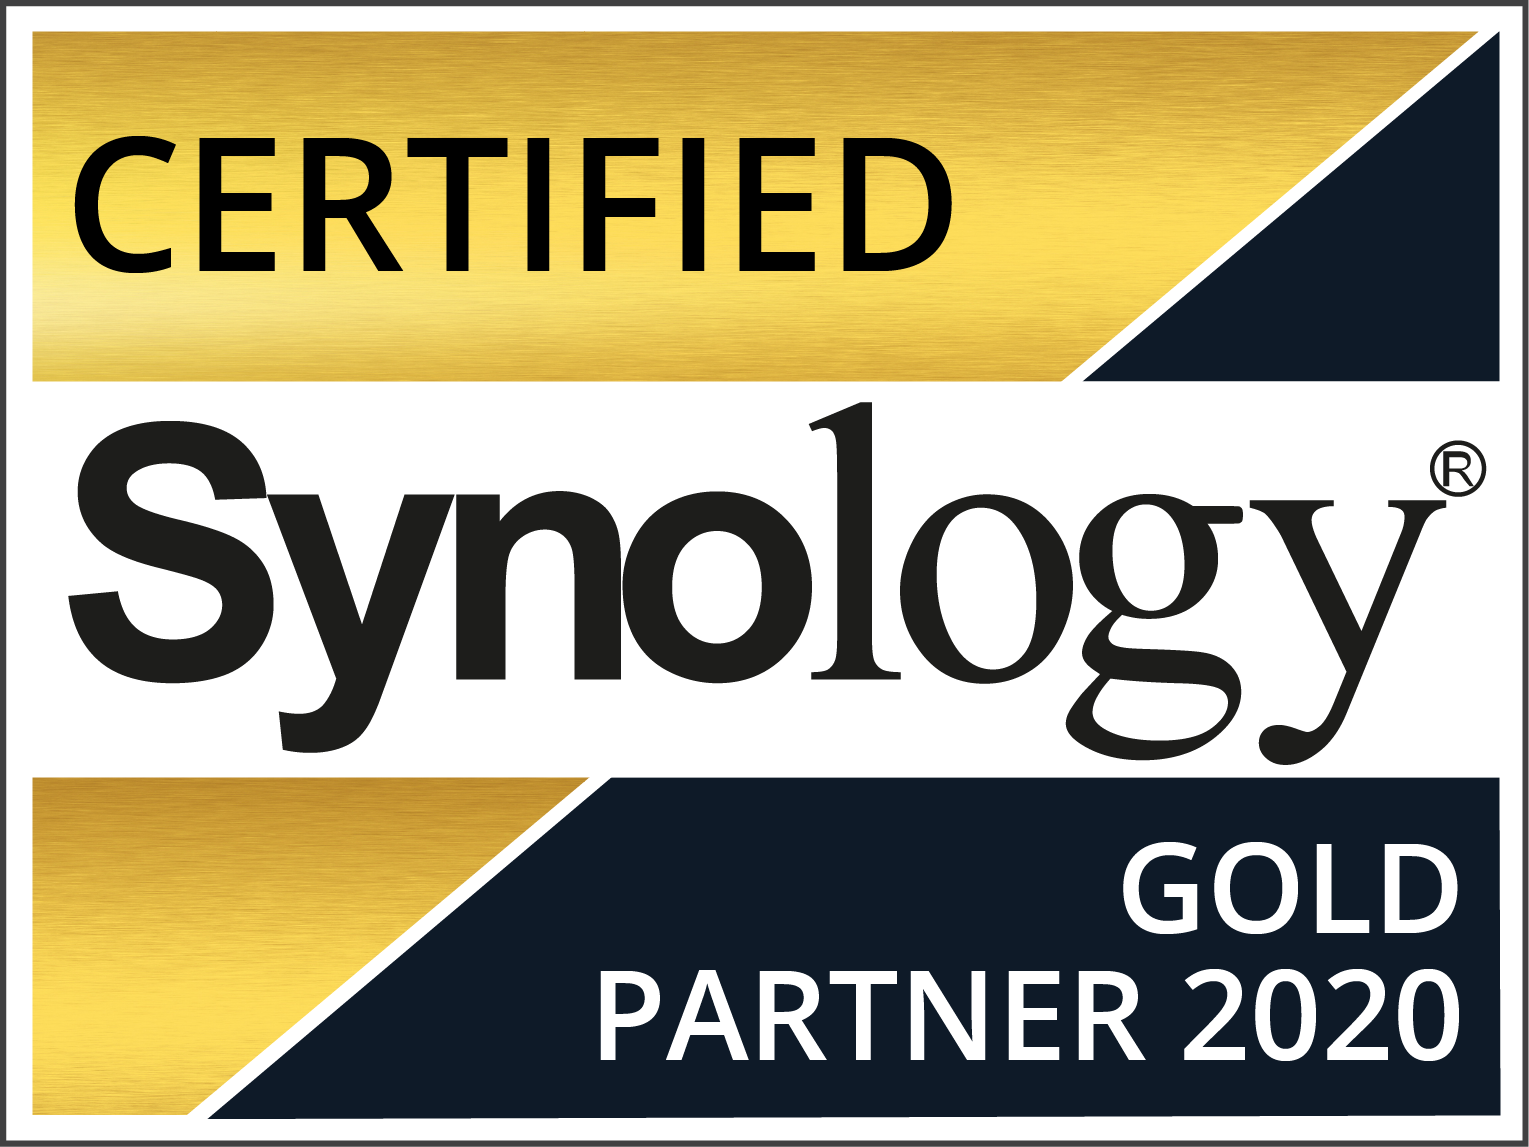 Certified-Gold-Partner 2020